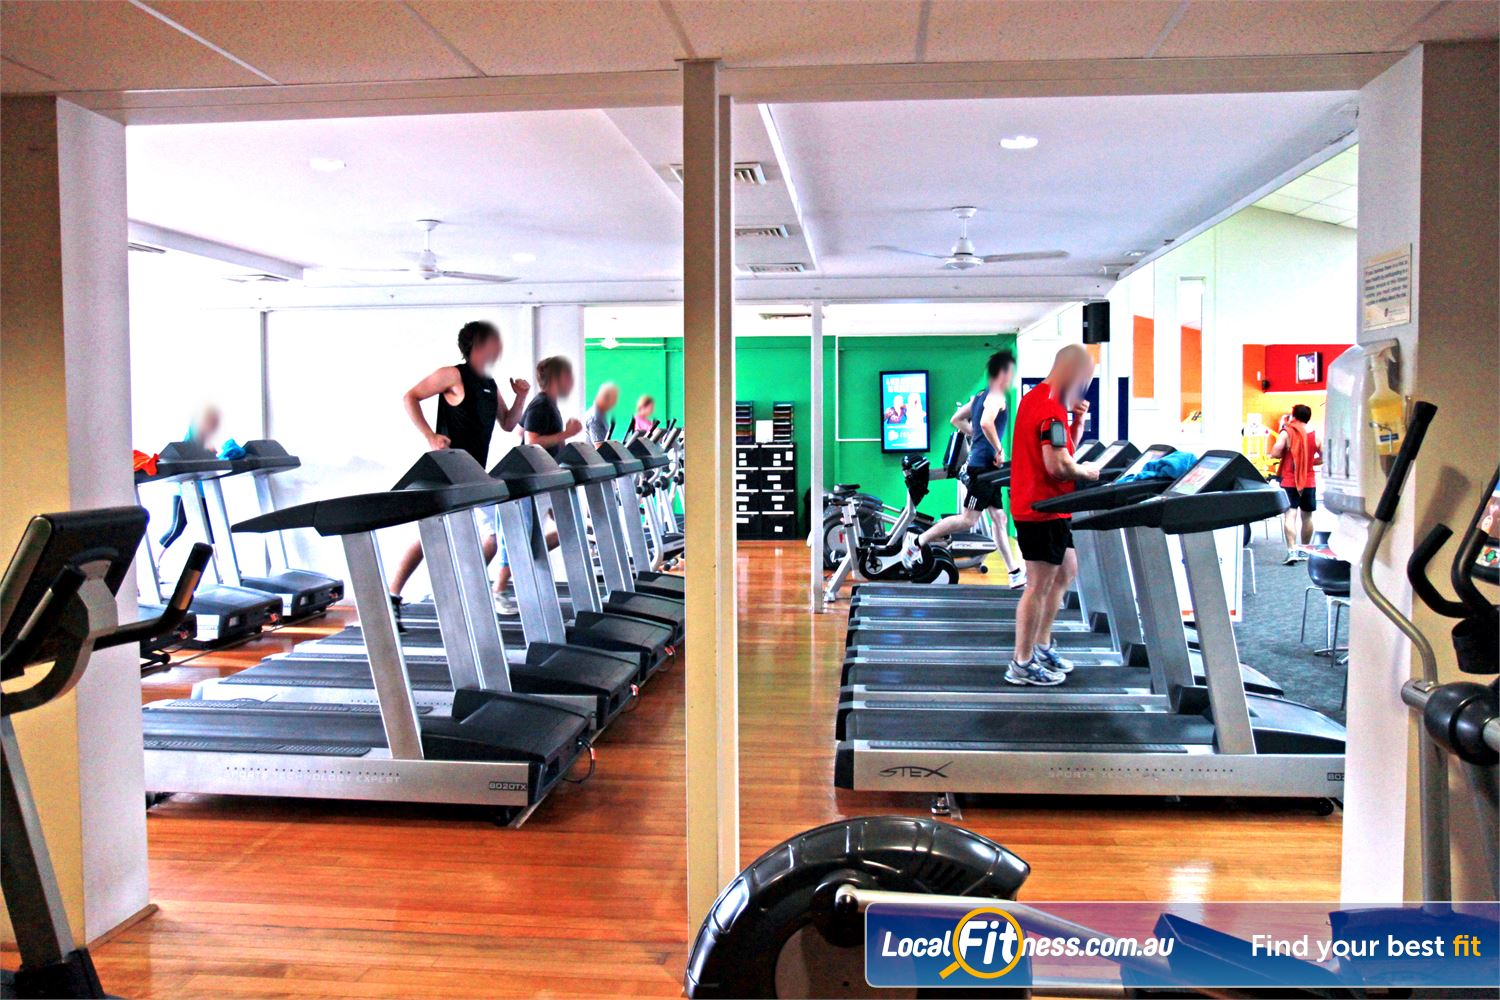 Goodlife Health Clubs Near Balmoral The latest cycle bikes, cross trainers and treadmills from Stex Fitness.